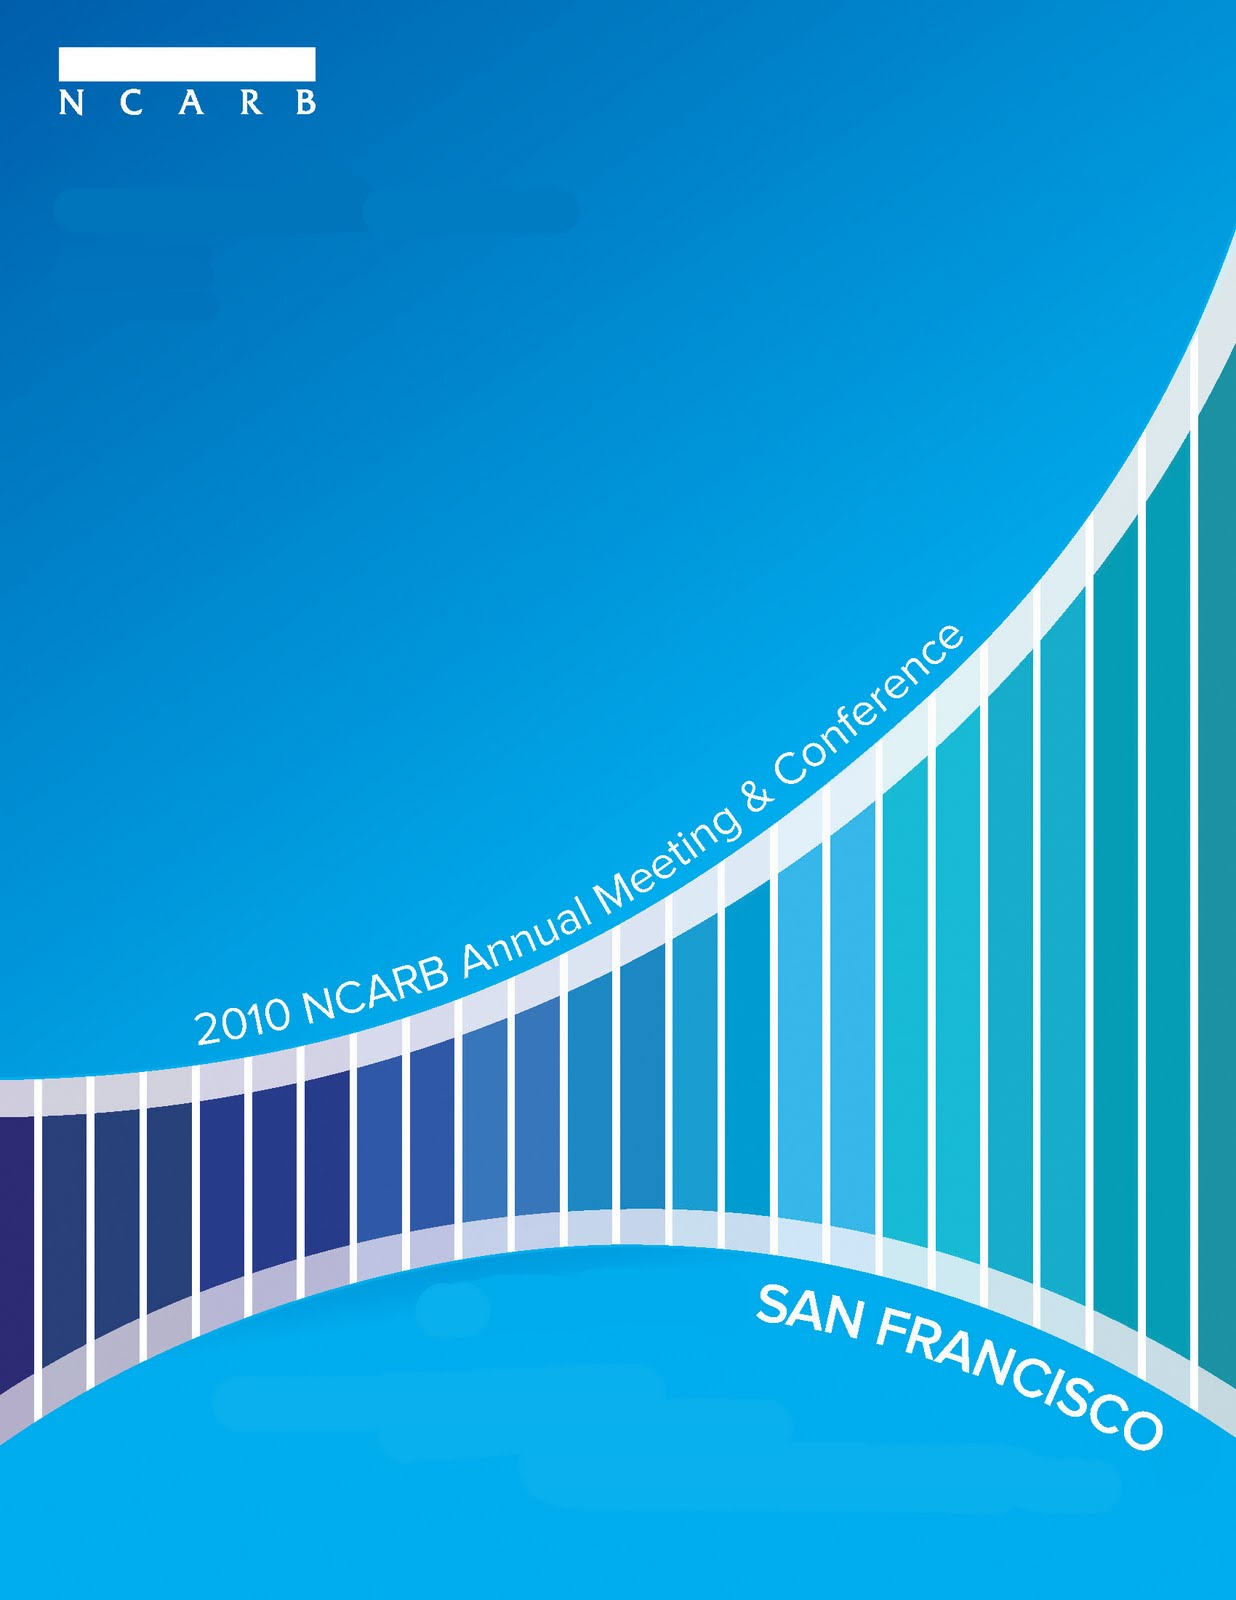 2010 ncarb annual meeting and conference cornerstone for Ncarb